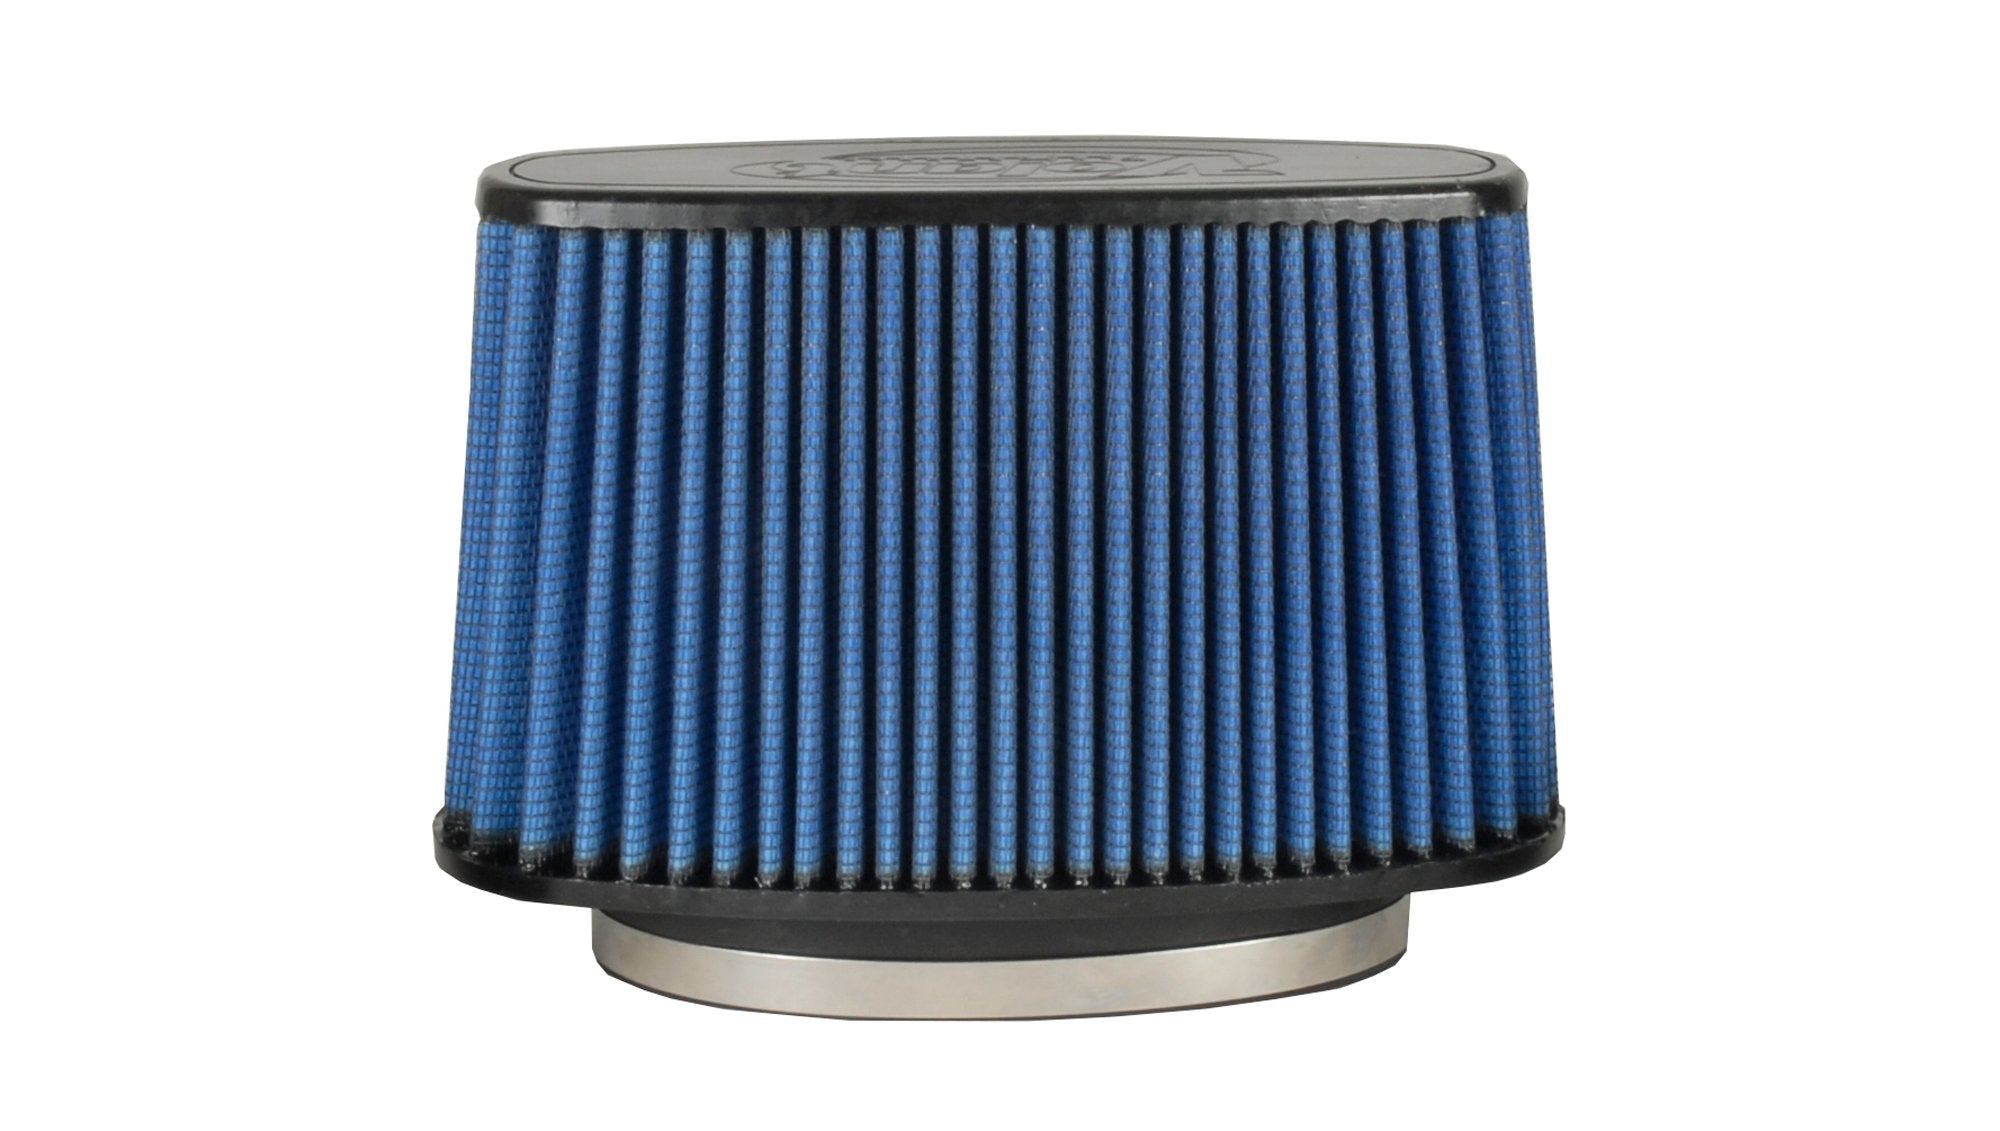 Pro5 Cotton Oiled Air Intake Air Filter - 5126